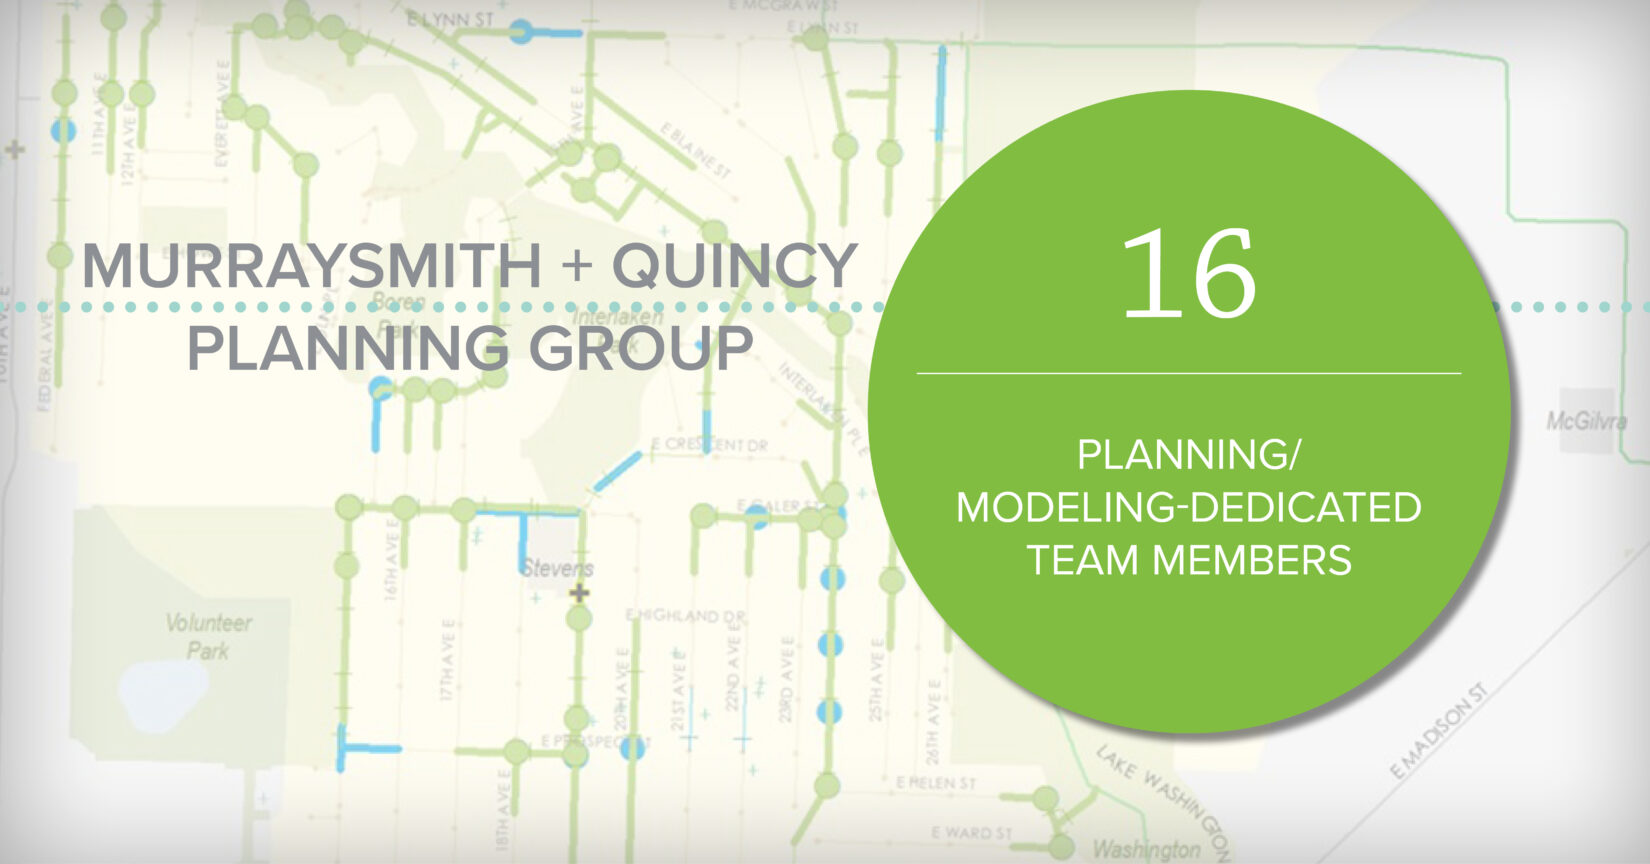 Our Planning Group—One Of The Largest Planning/Modeling-Dedicated Teams In The Pacific Northwest